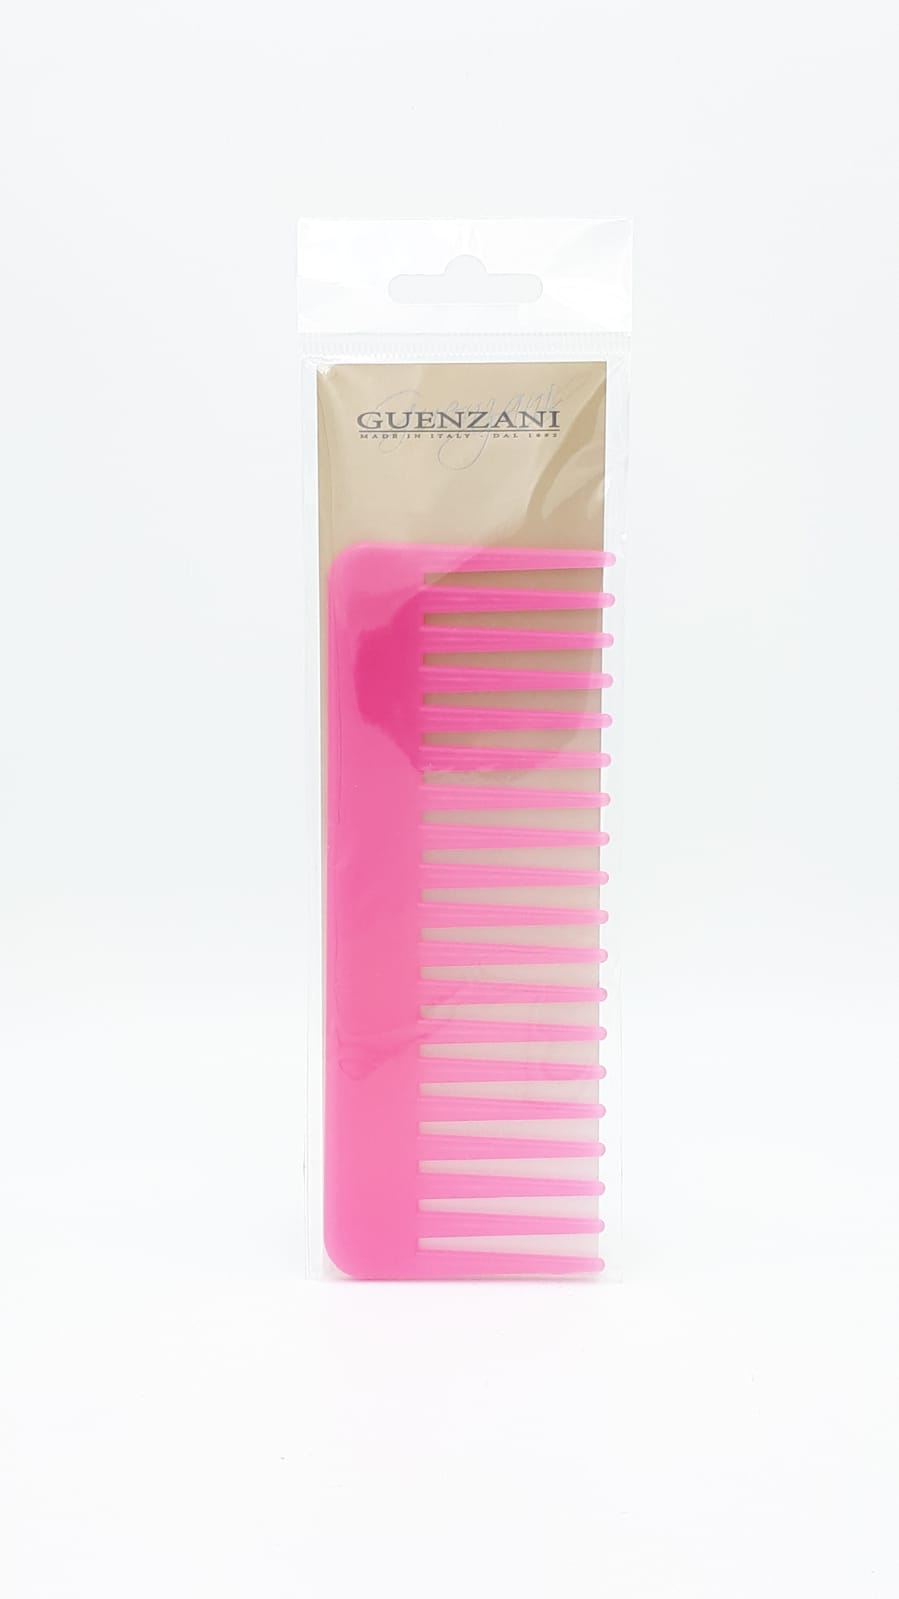 GUENZANI PETTINE PER CAPELLI ROSA PROFESSIONALE MADE IN ITALY N 3511